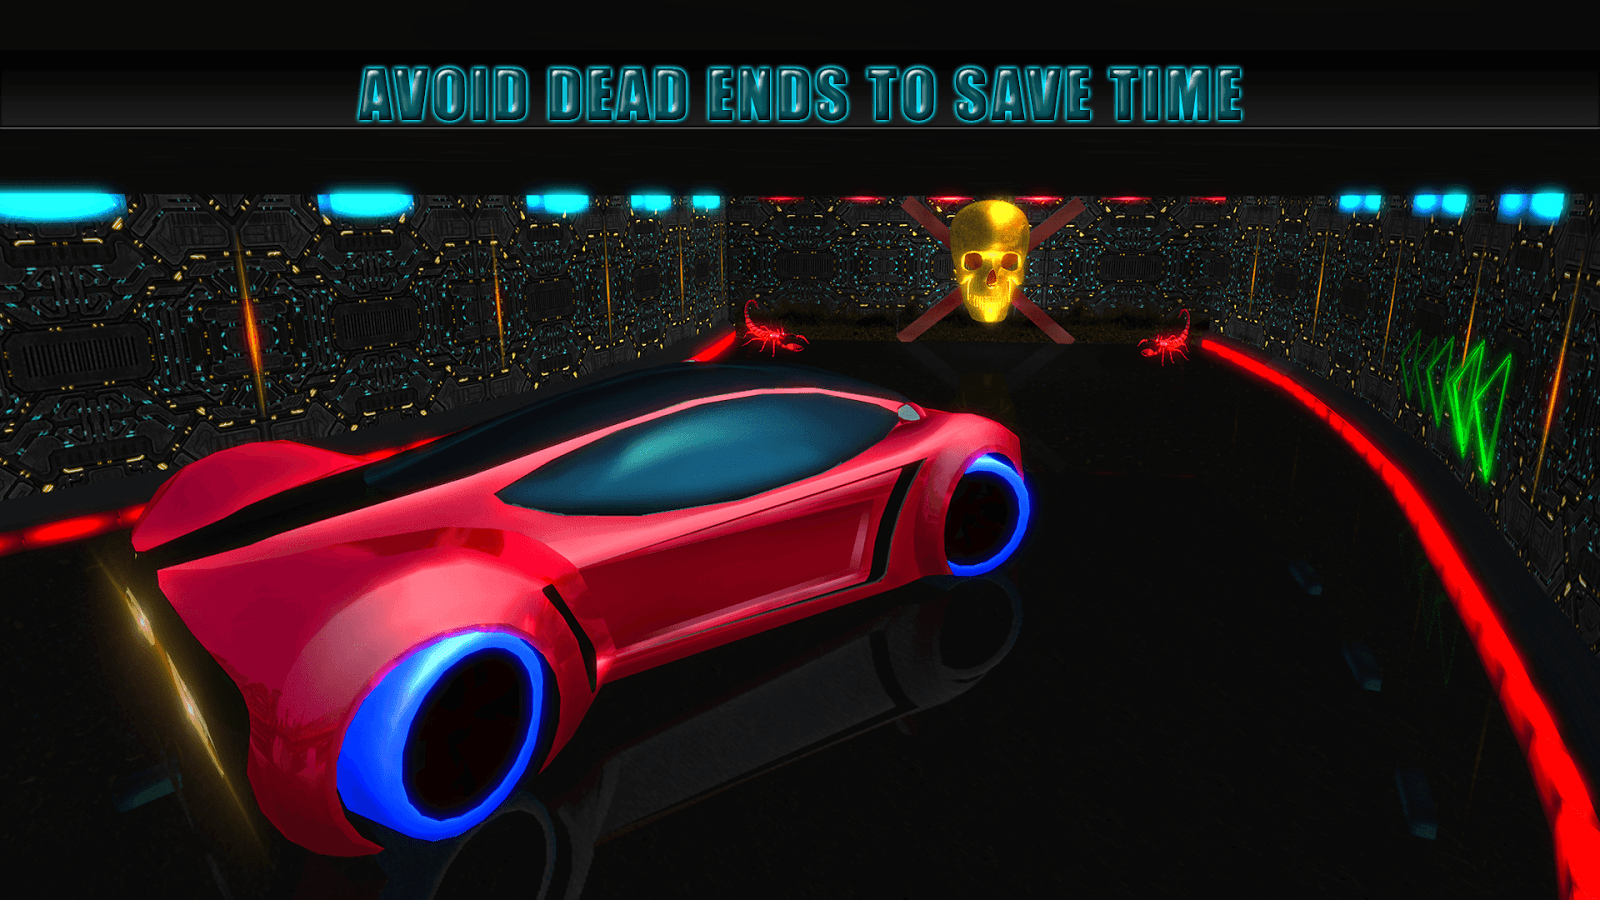 futuristic neon car driving : arena rival 2018 - android apps on